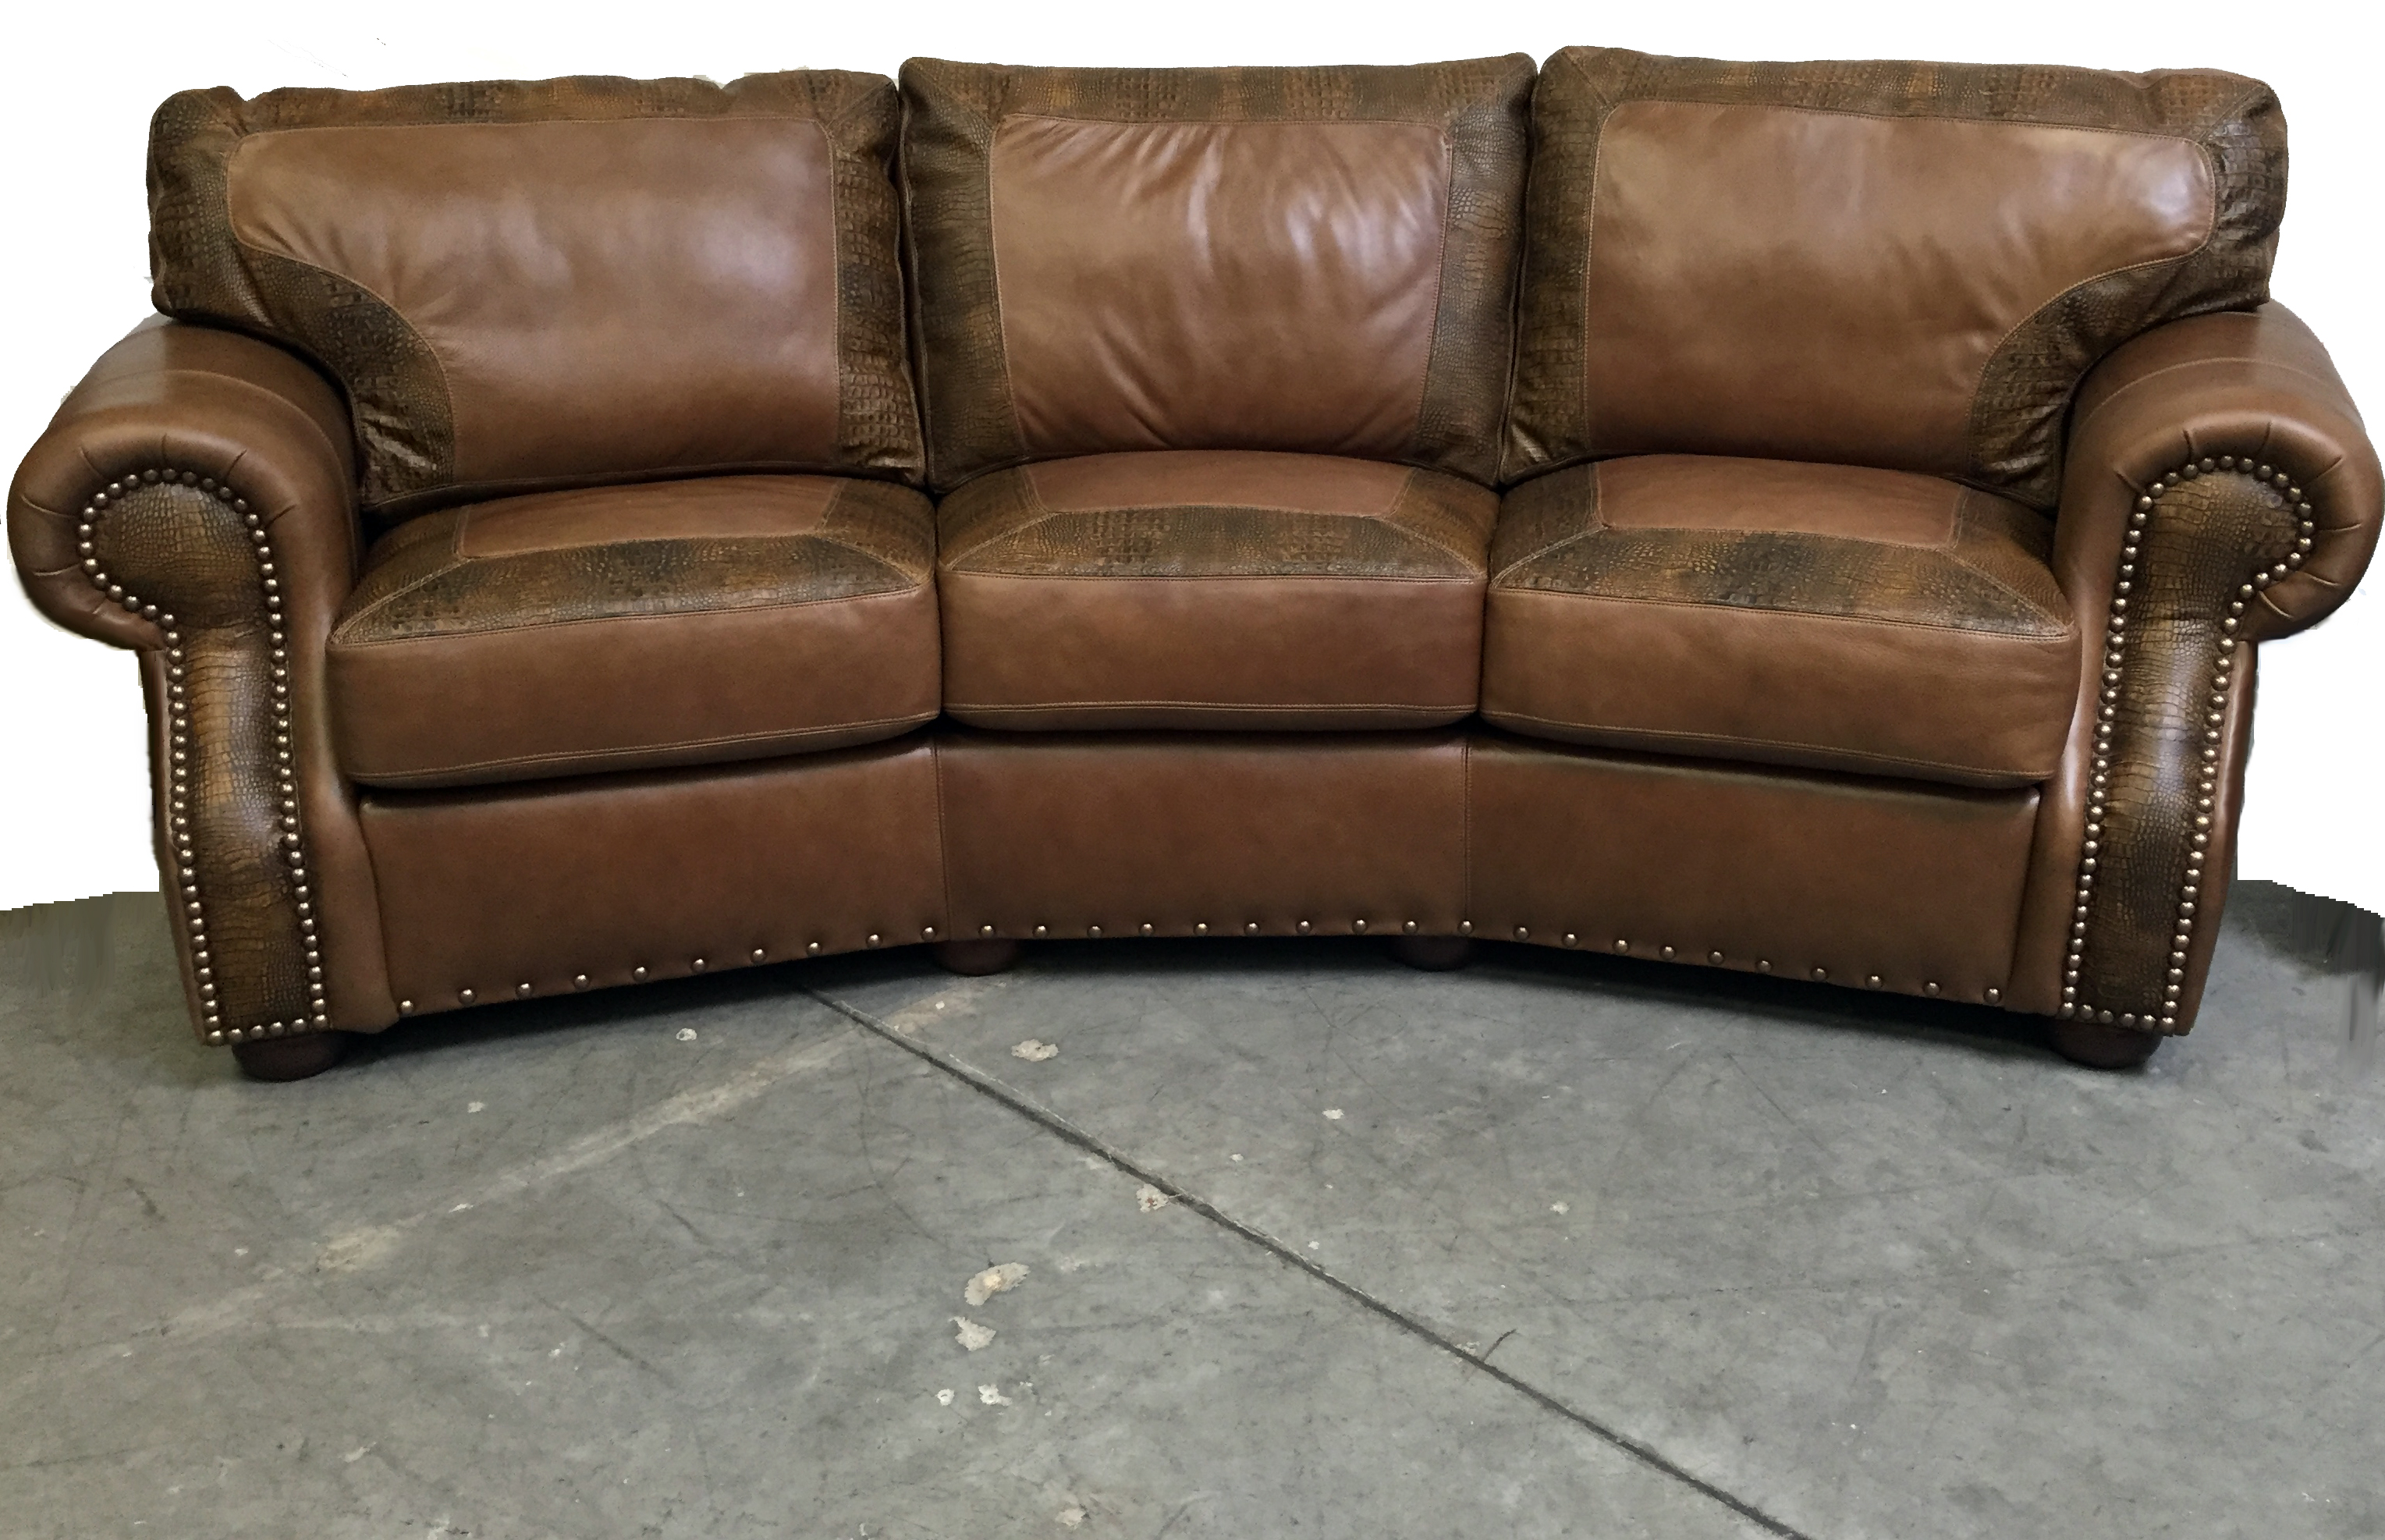 Recessed Arm Angle Sofa with window panes